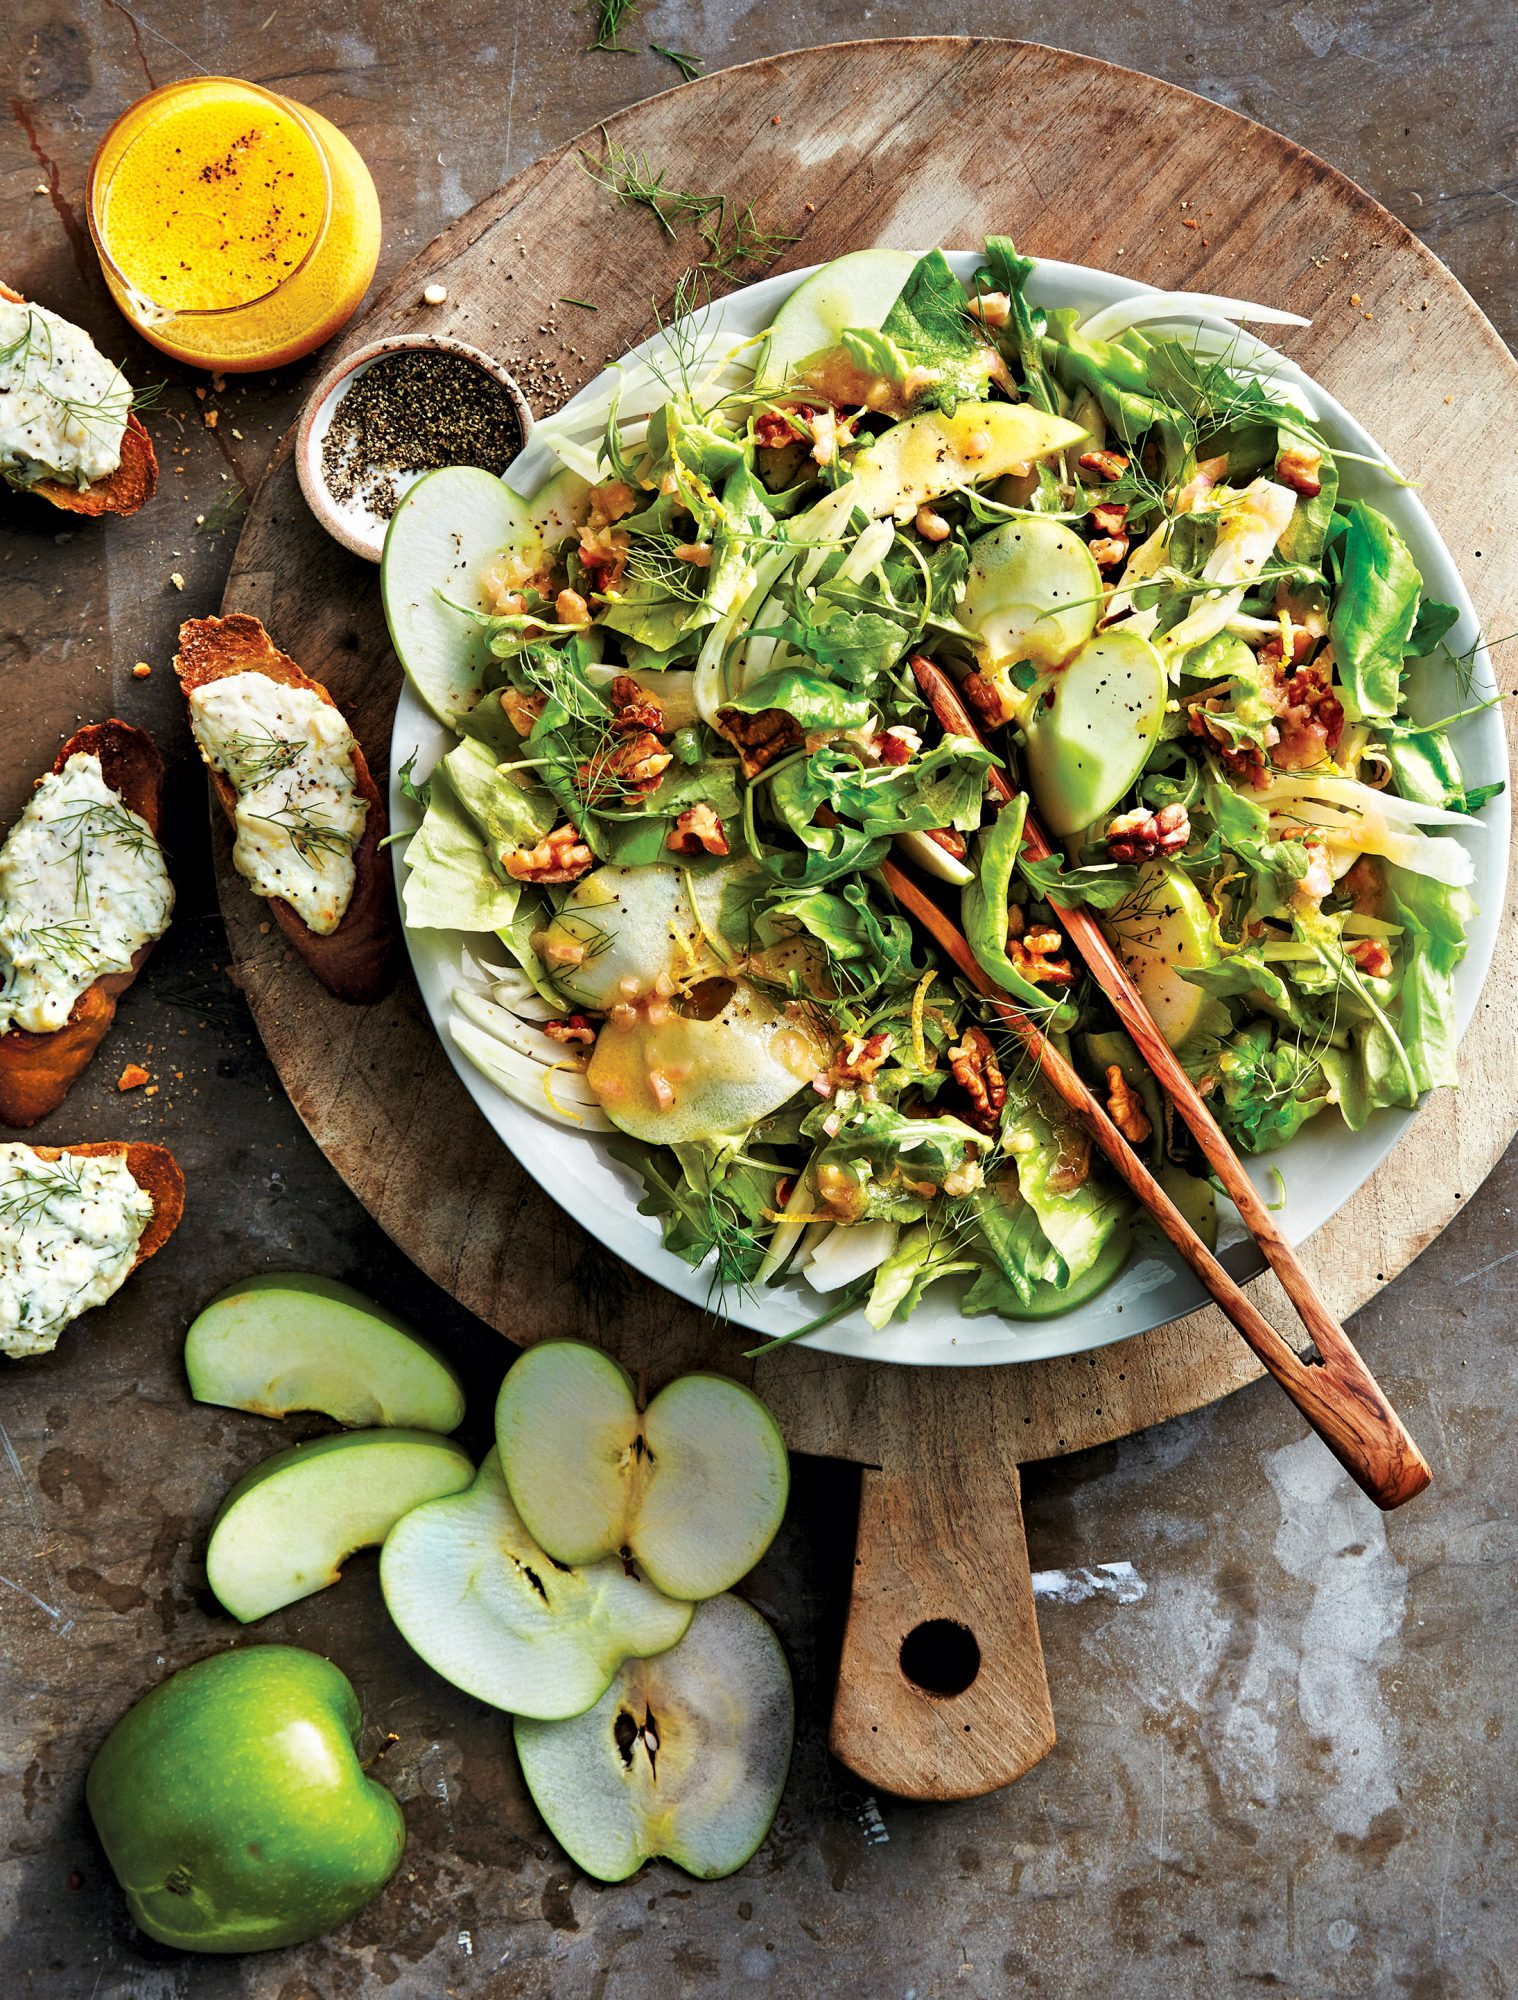 Arugula, Apple, and Fennel Salad With Citrus Vinaigrette